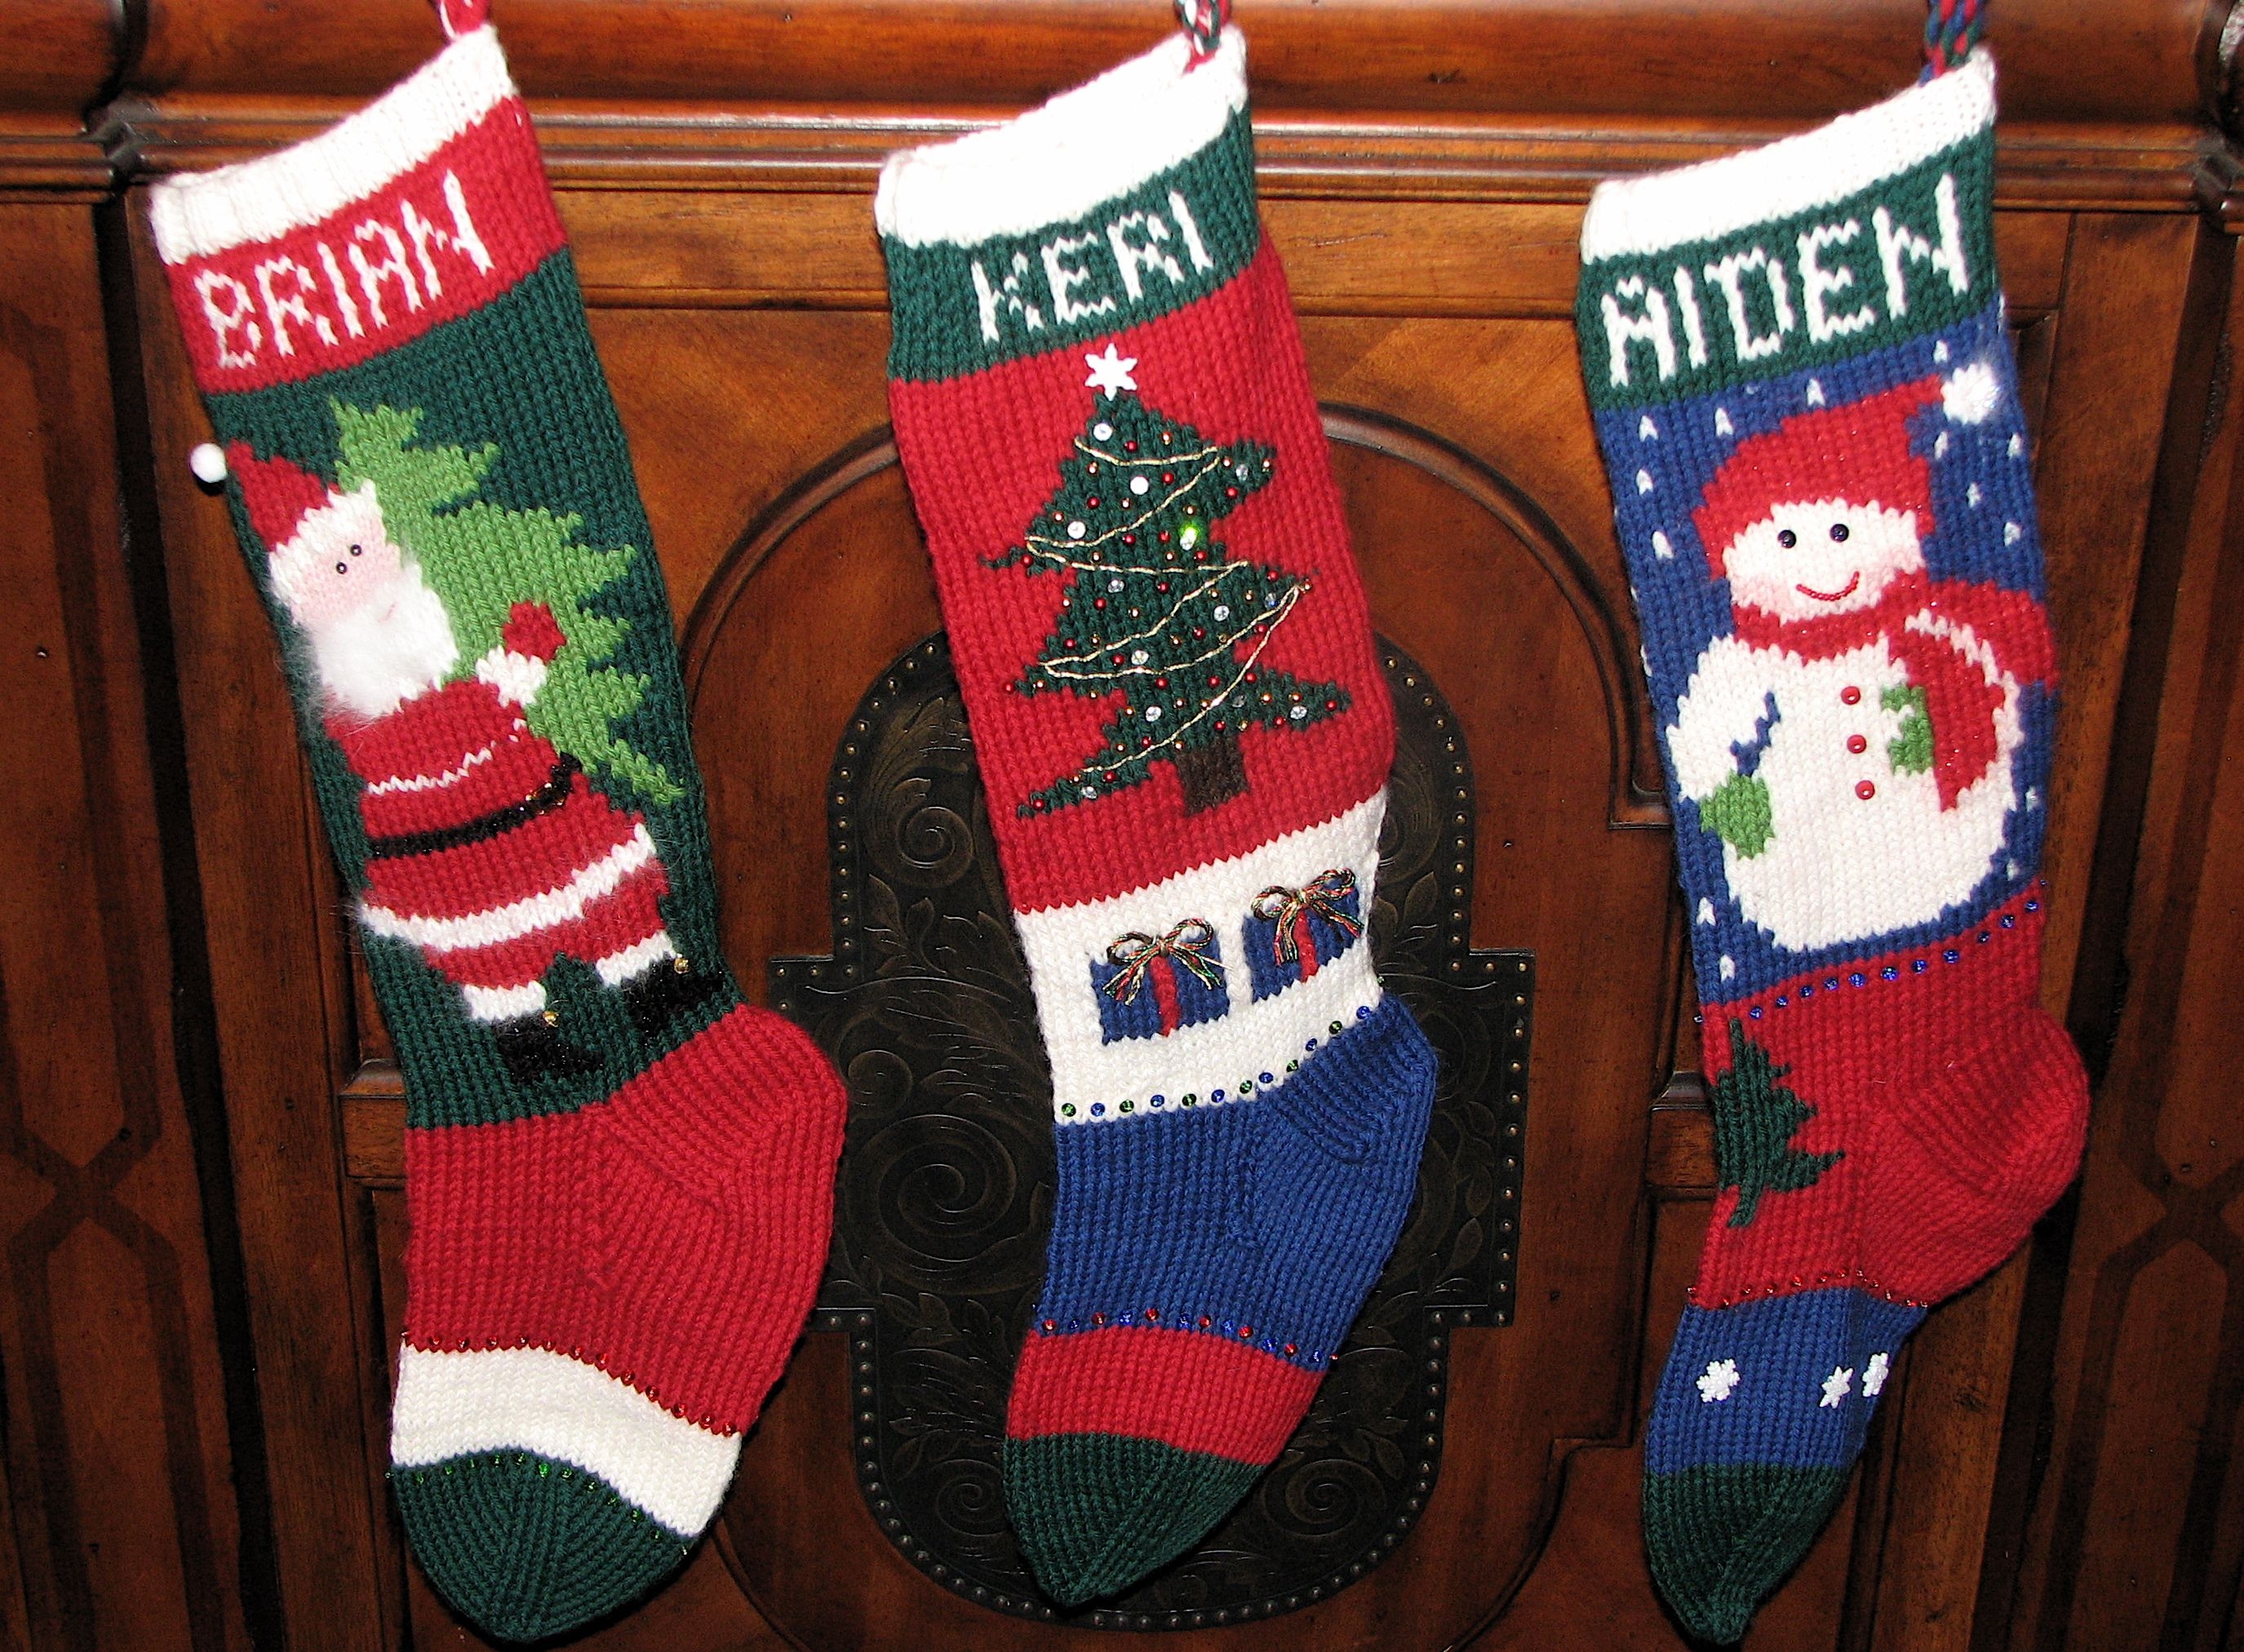 Vintage Christmas stockings knitted from 1950\'s-era patterns. | Yule ...